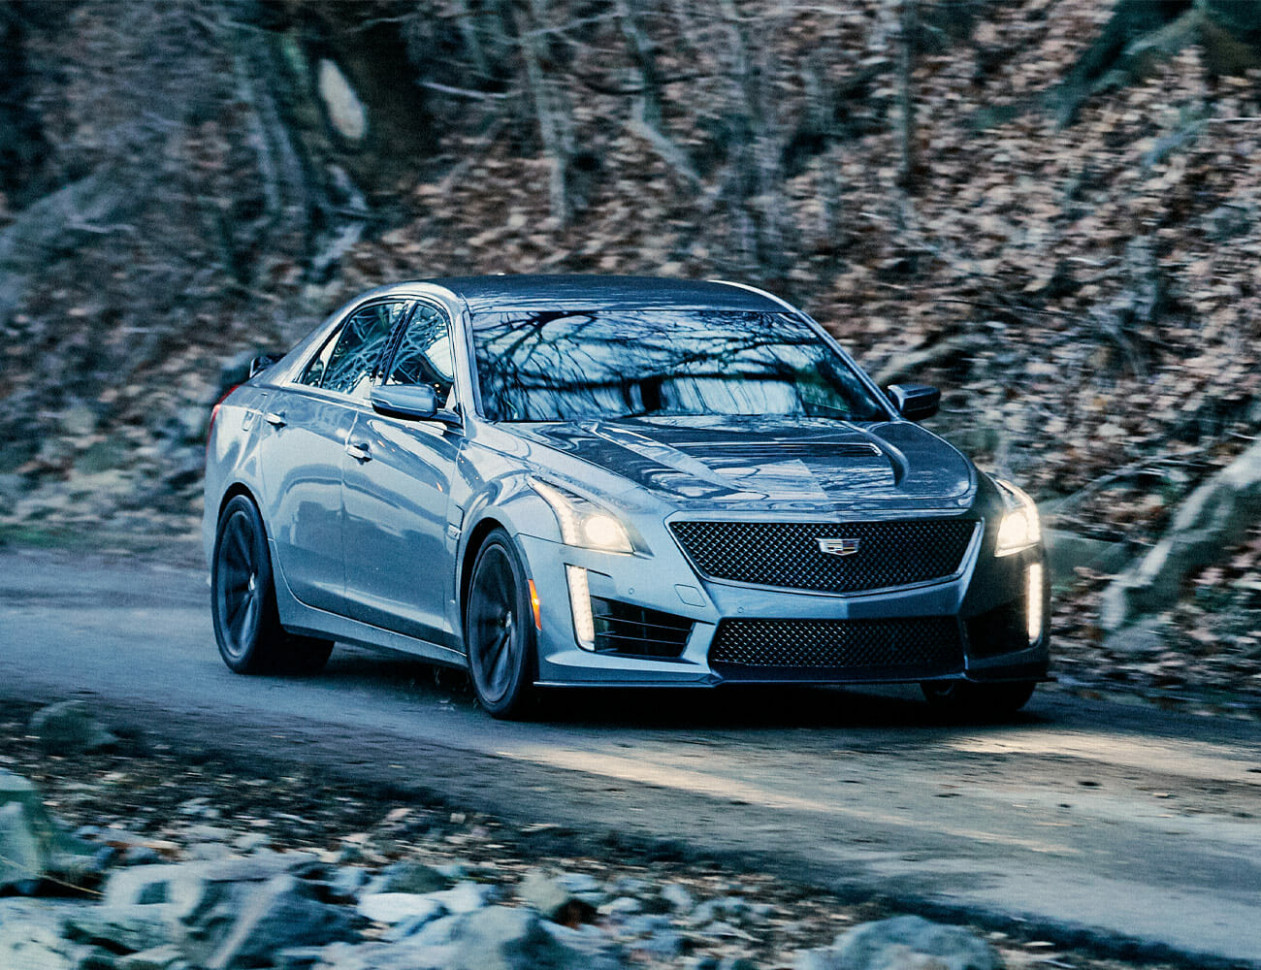 The 6 Cadillac CTS-V Will Be One of the All-Time Greats • Gear ..